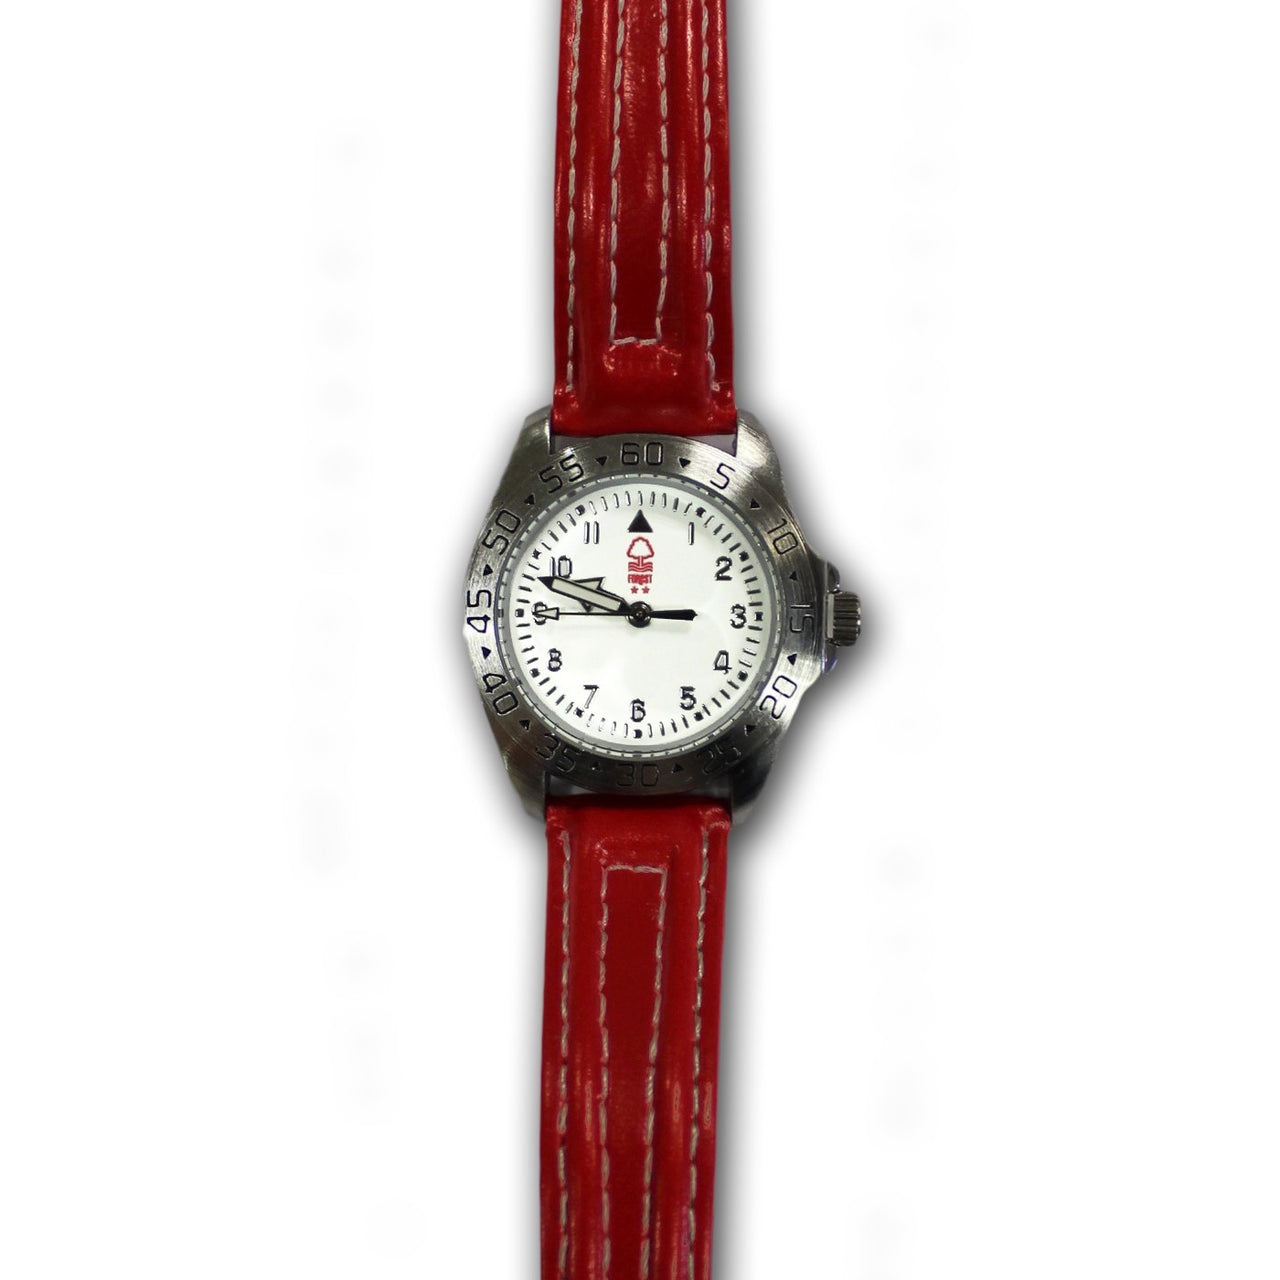 NFFC Womens Leather Strap Watch